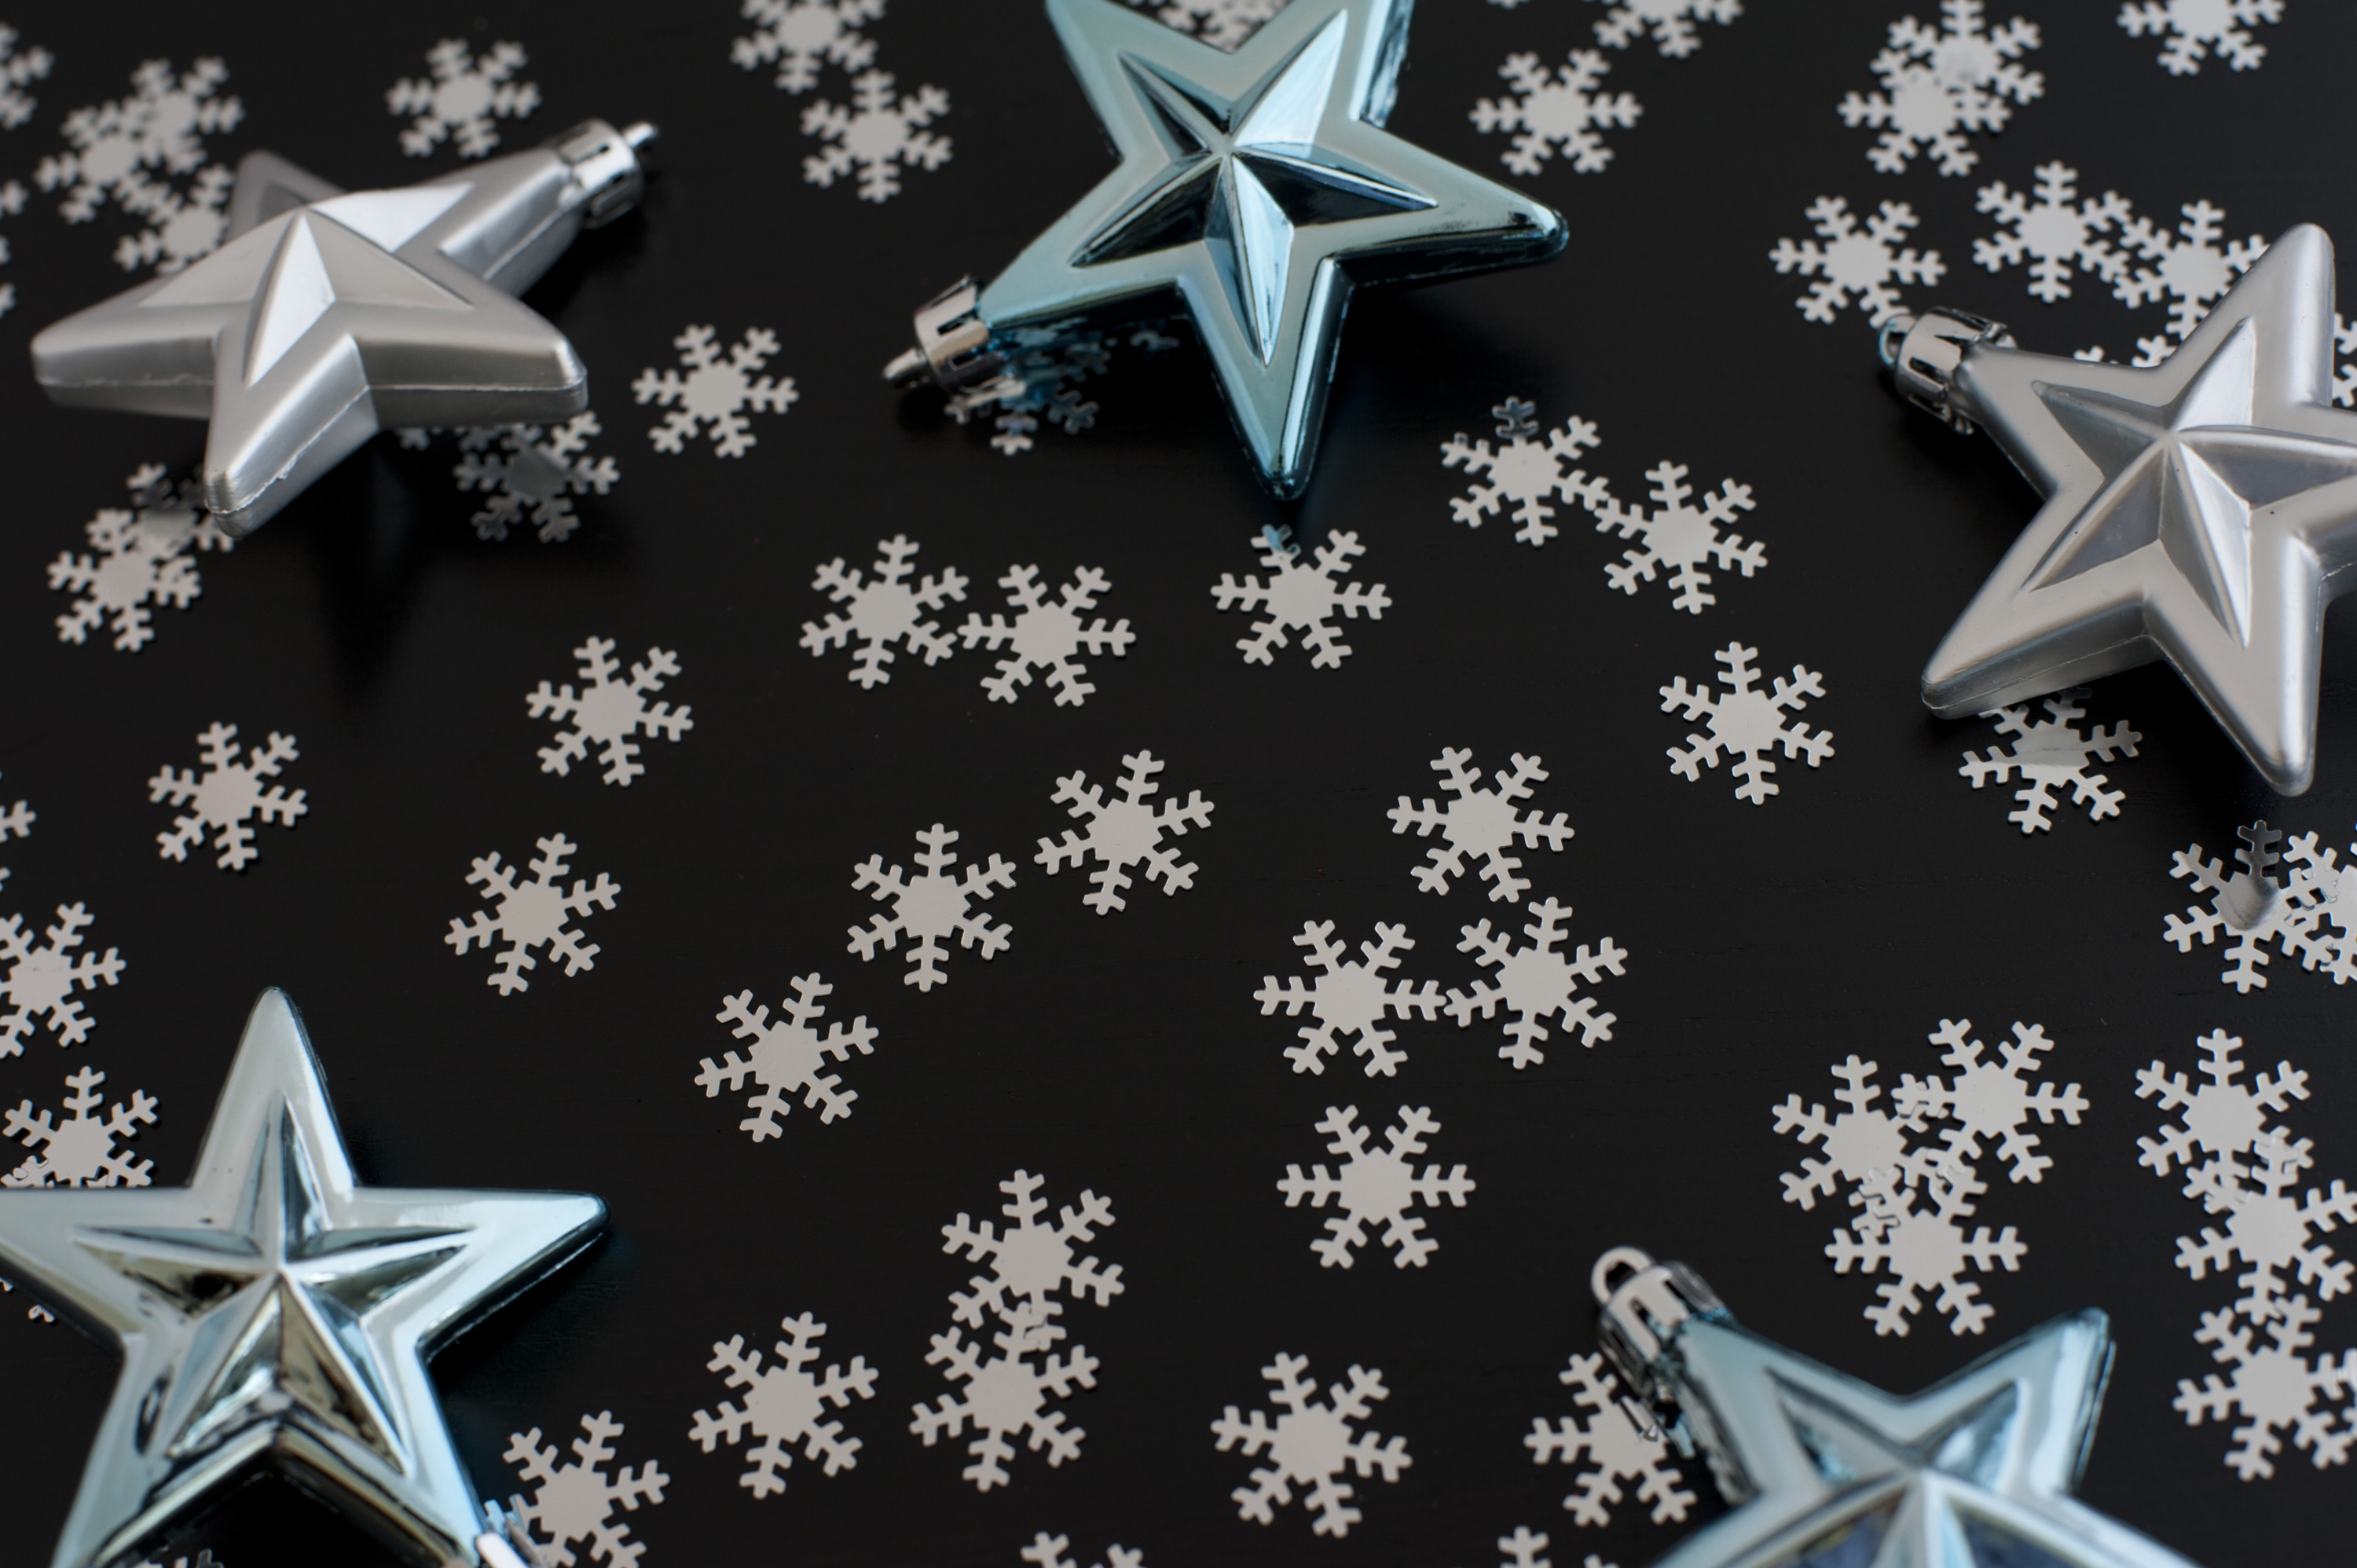 Christmas star background with scattered winter snowflakes forming copyspace for your greeting or message